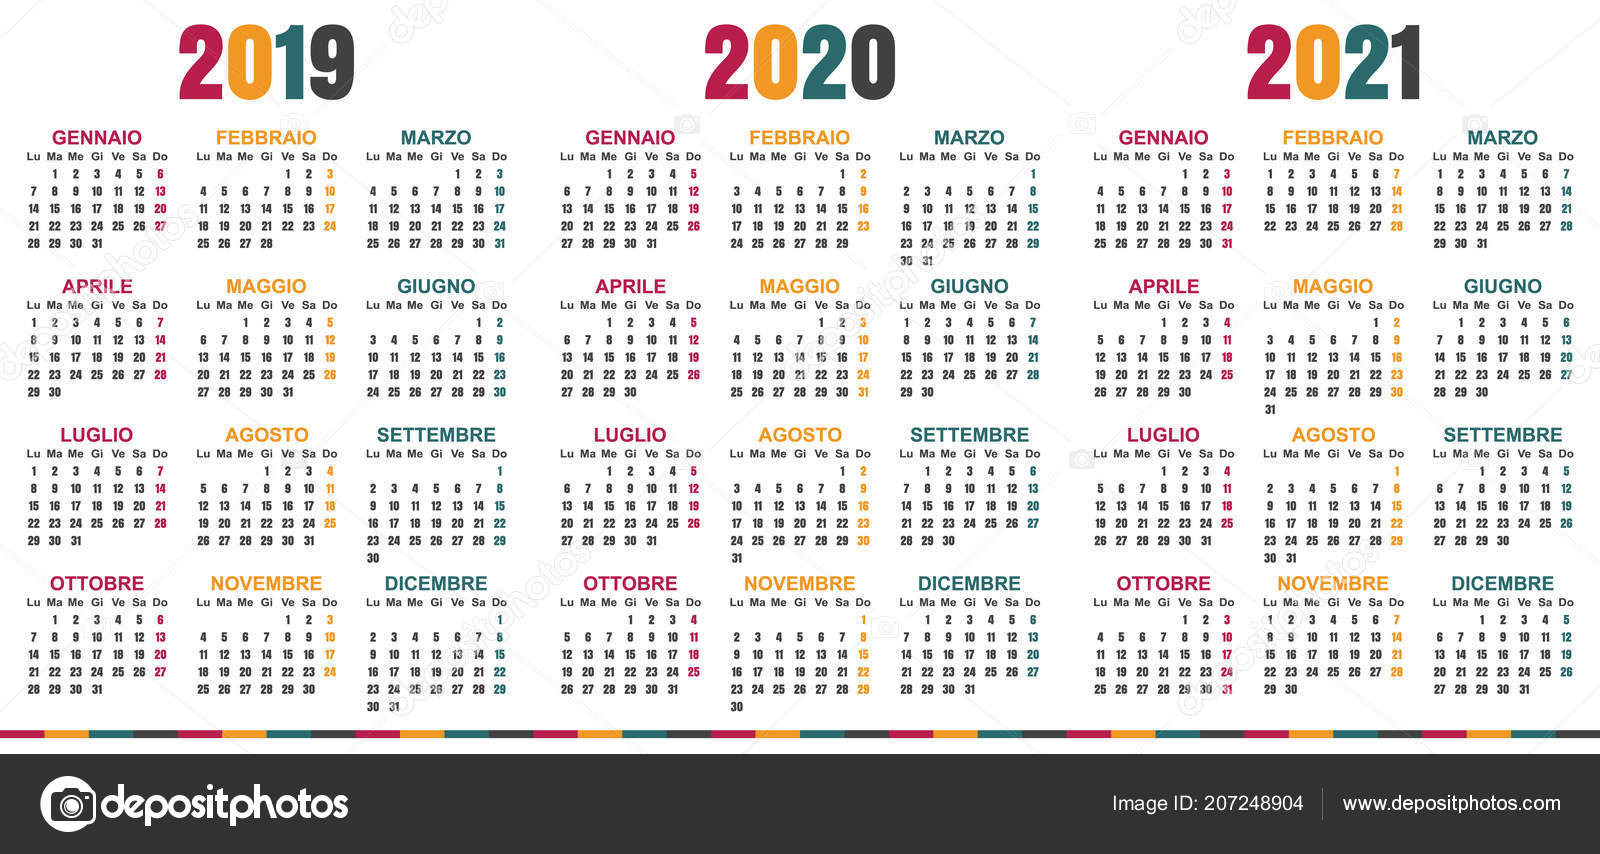 italian planning calendar 2019 2021 week starts on monday simple calendar template for 2019 2020 and 2021 printable calendar templates